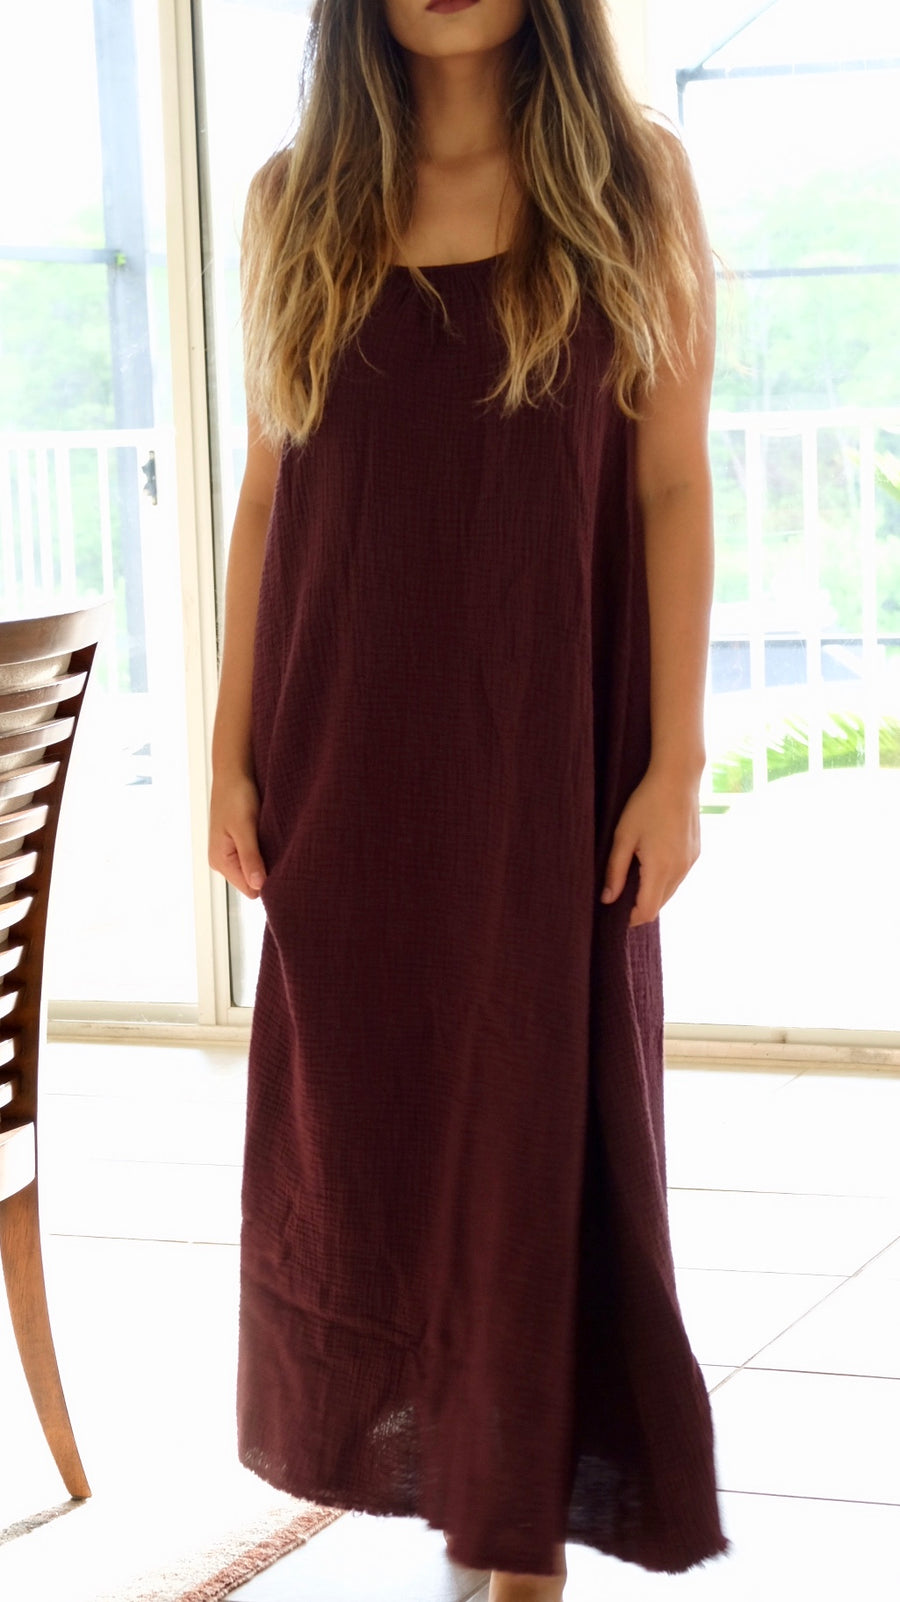 Nation LTD Lila Cotton Dress in Raisin